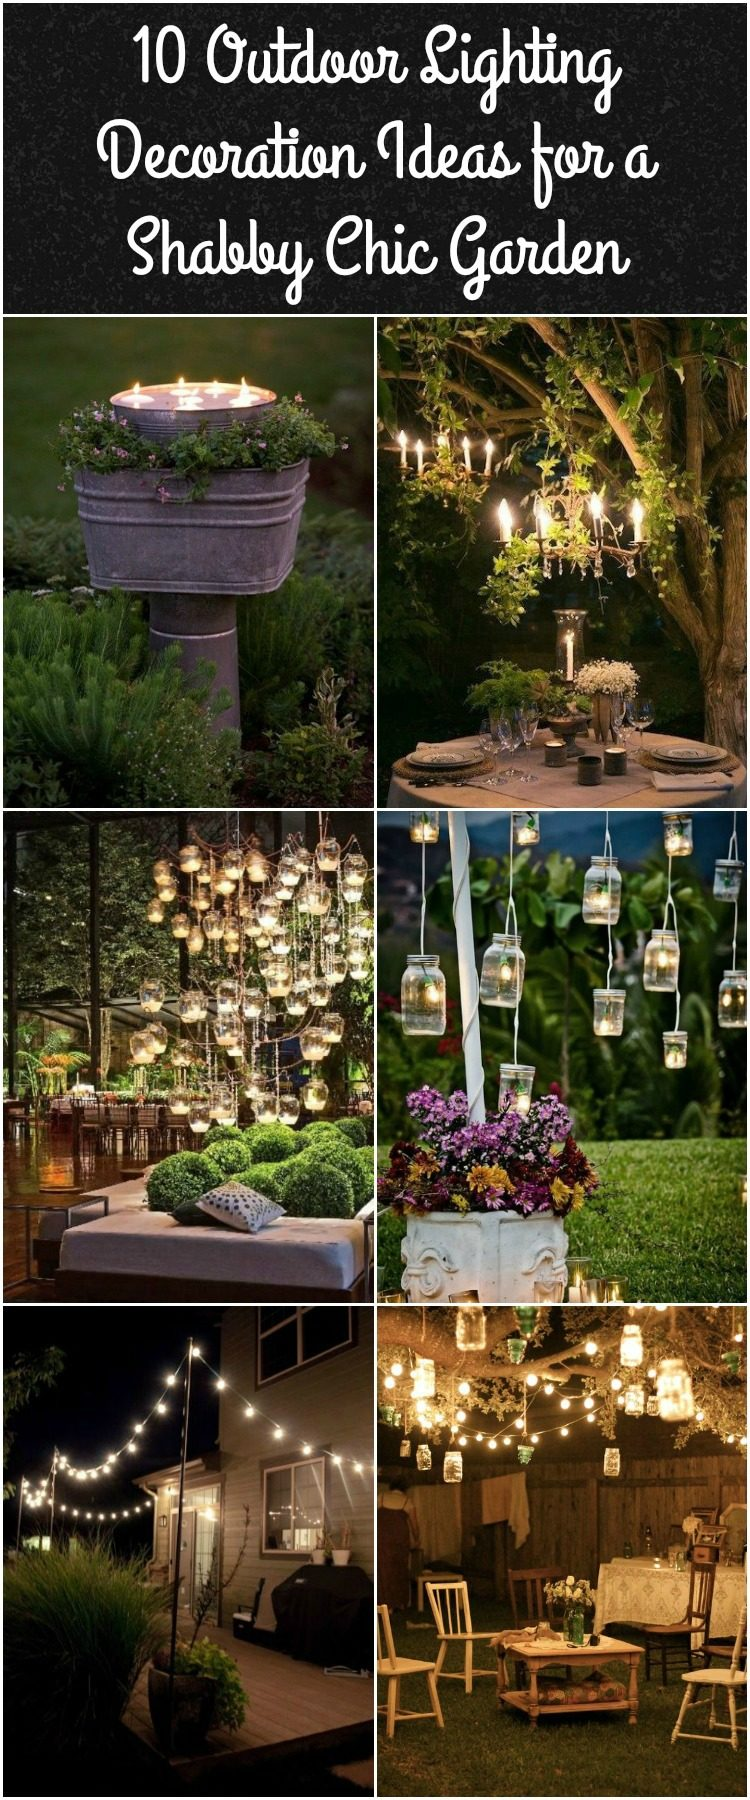 10 Outdoor Lighting Decoration Ideas For A Shabby Chic